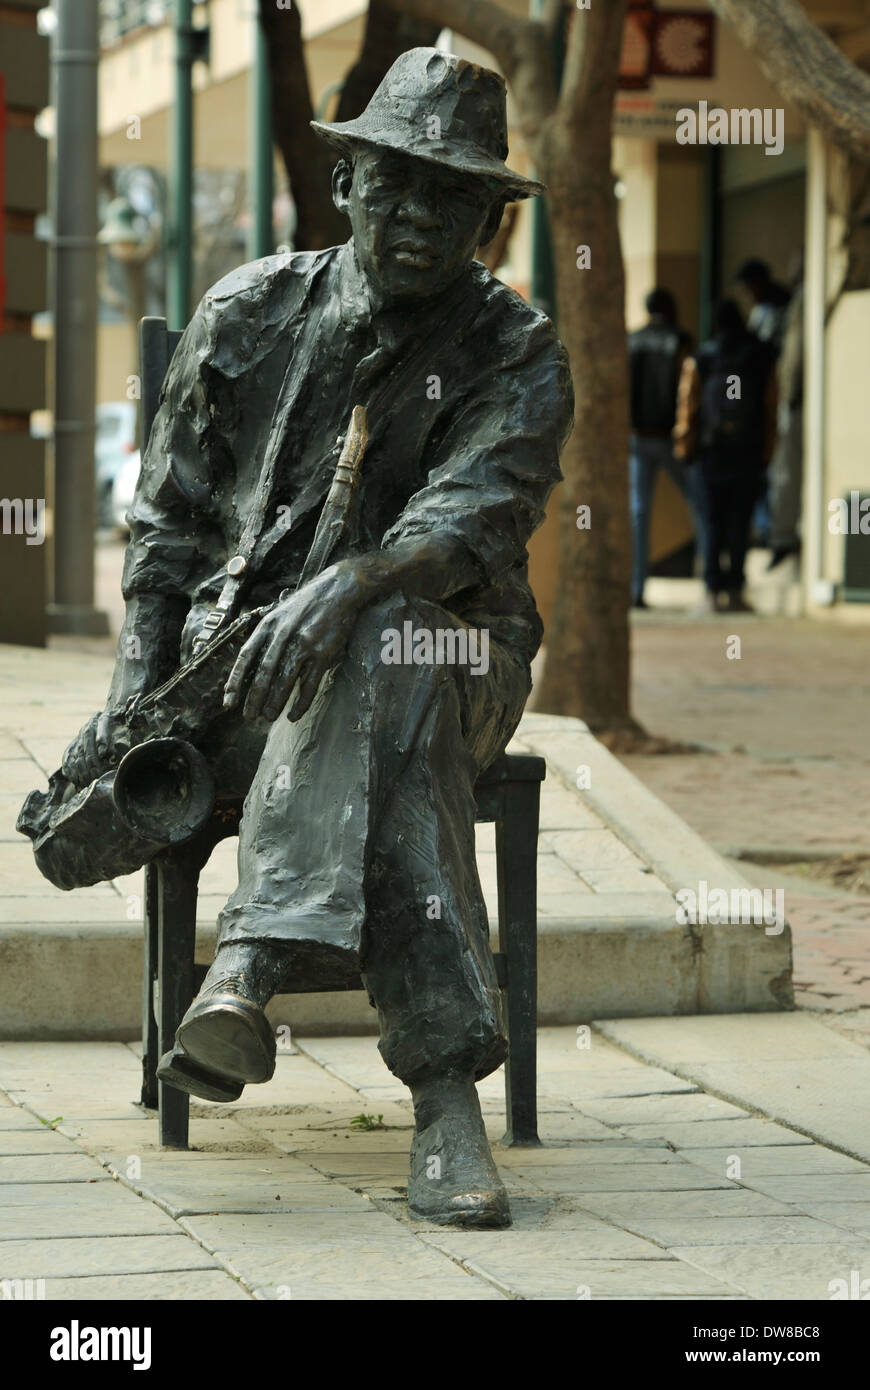 Johannesburg, Gauteng, South Africa, bronze sculpture, saxophone player sitting on chair, Market theatre culture complex, people, city - Stock Image